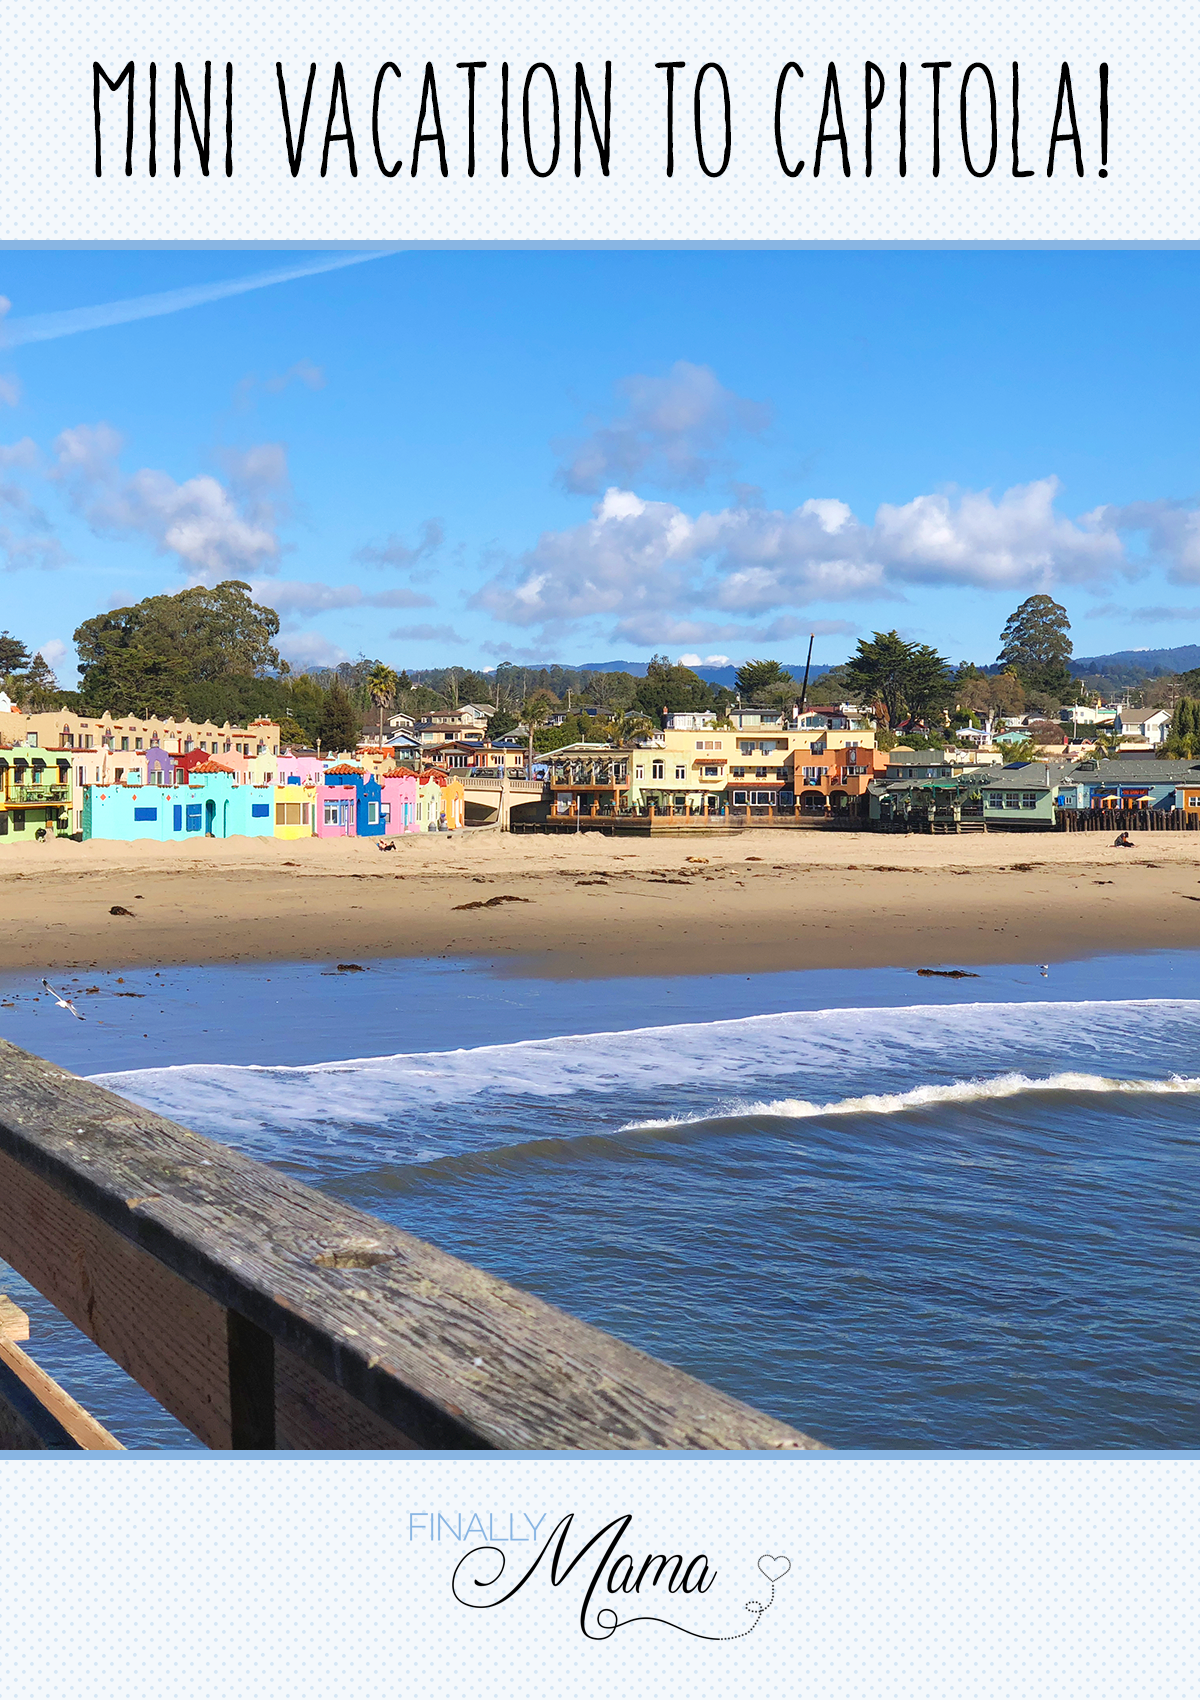 Mini Vacation to Capitola!